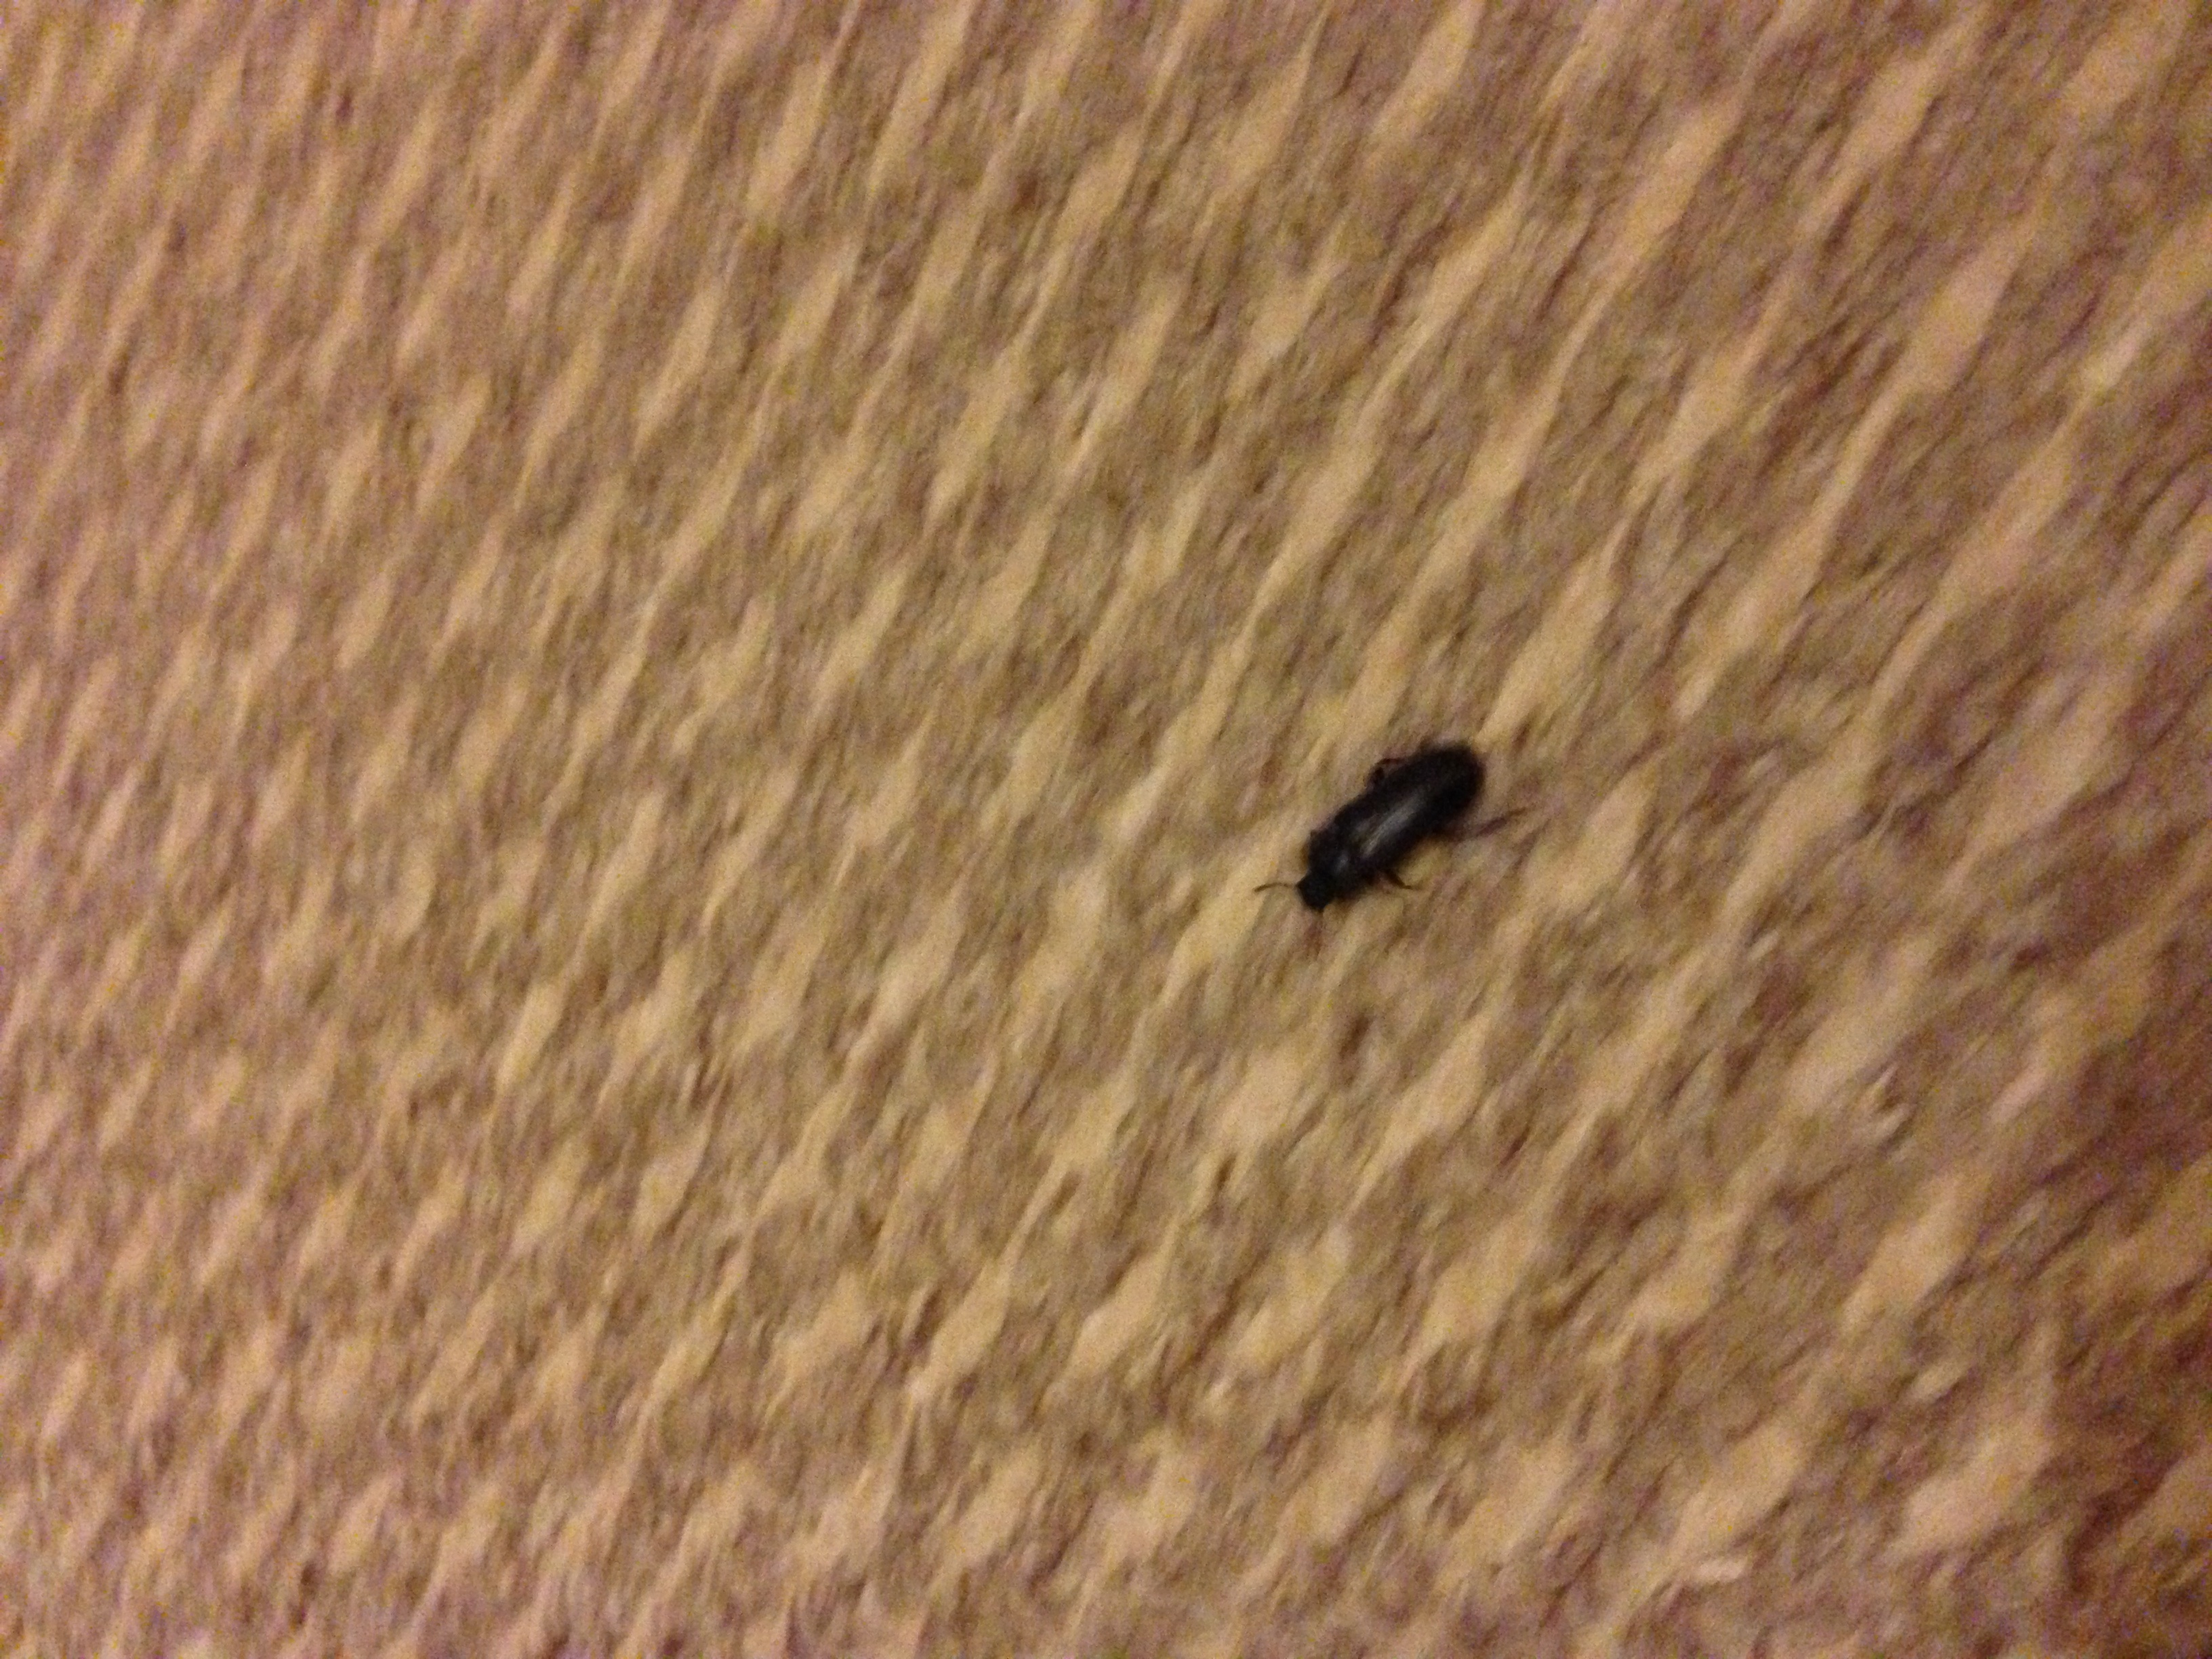 Keep Finding These Beetles All Over My Flat